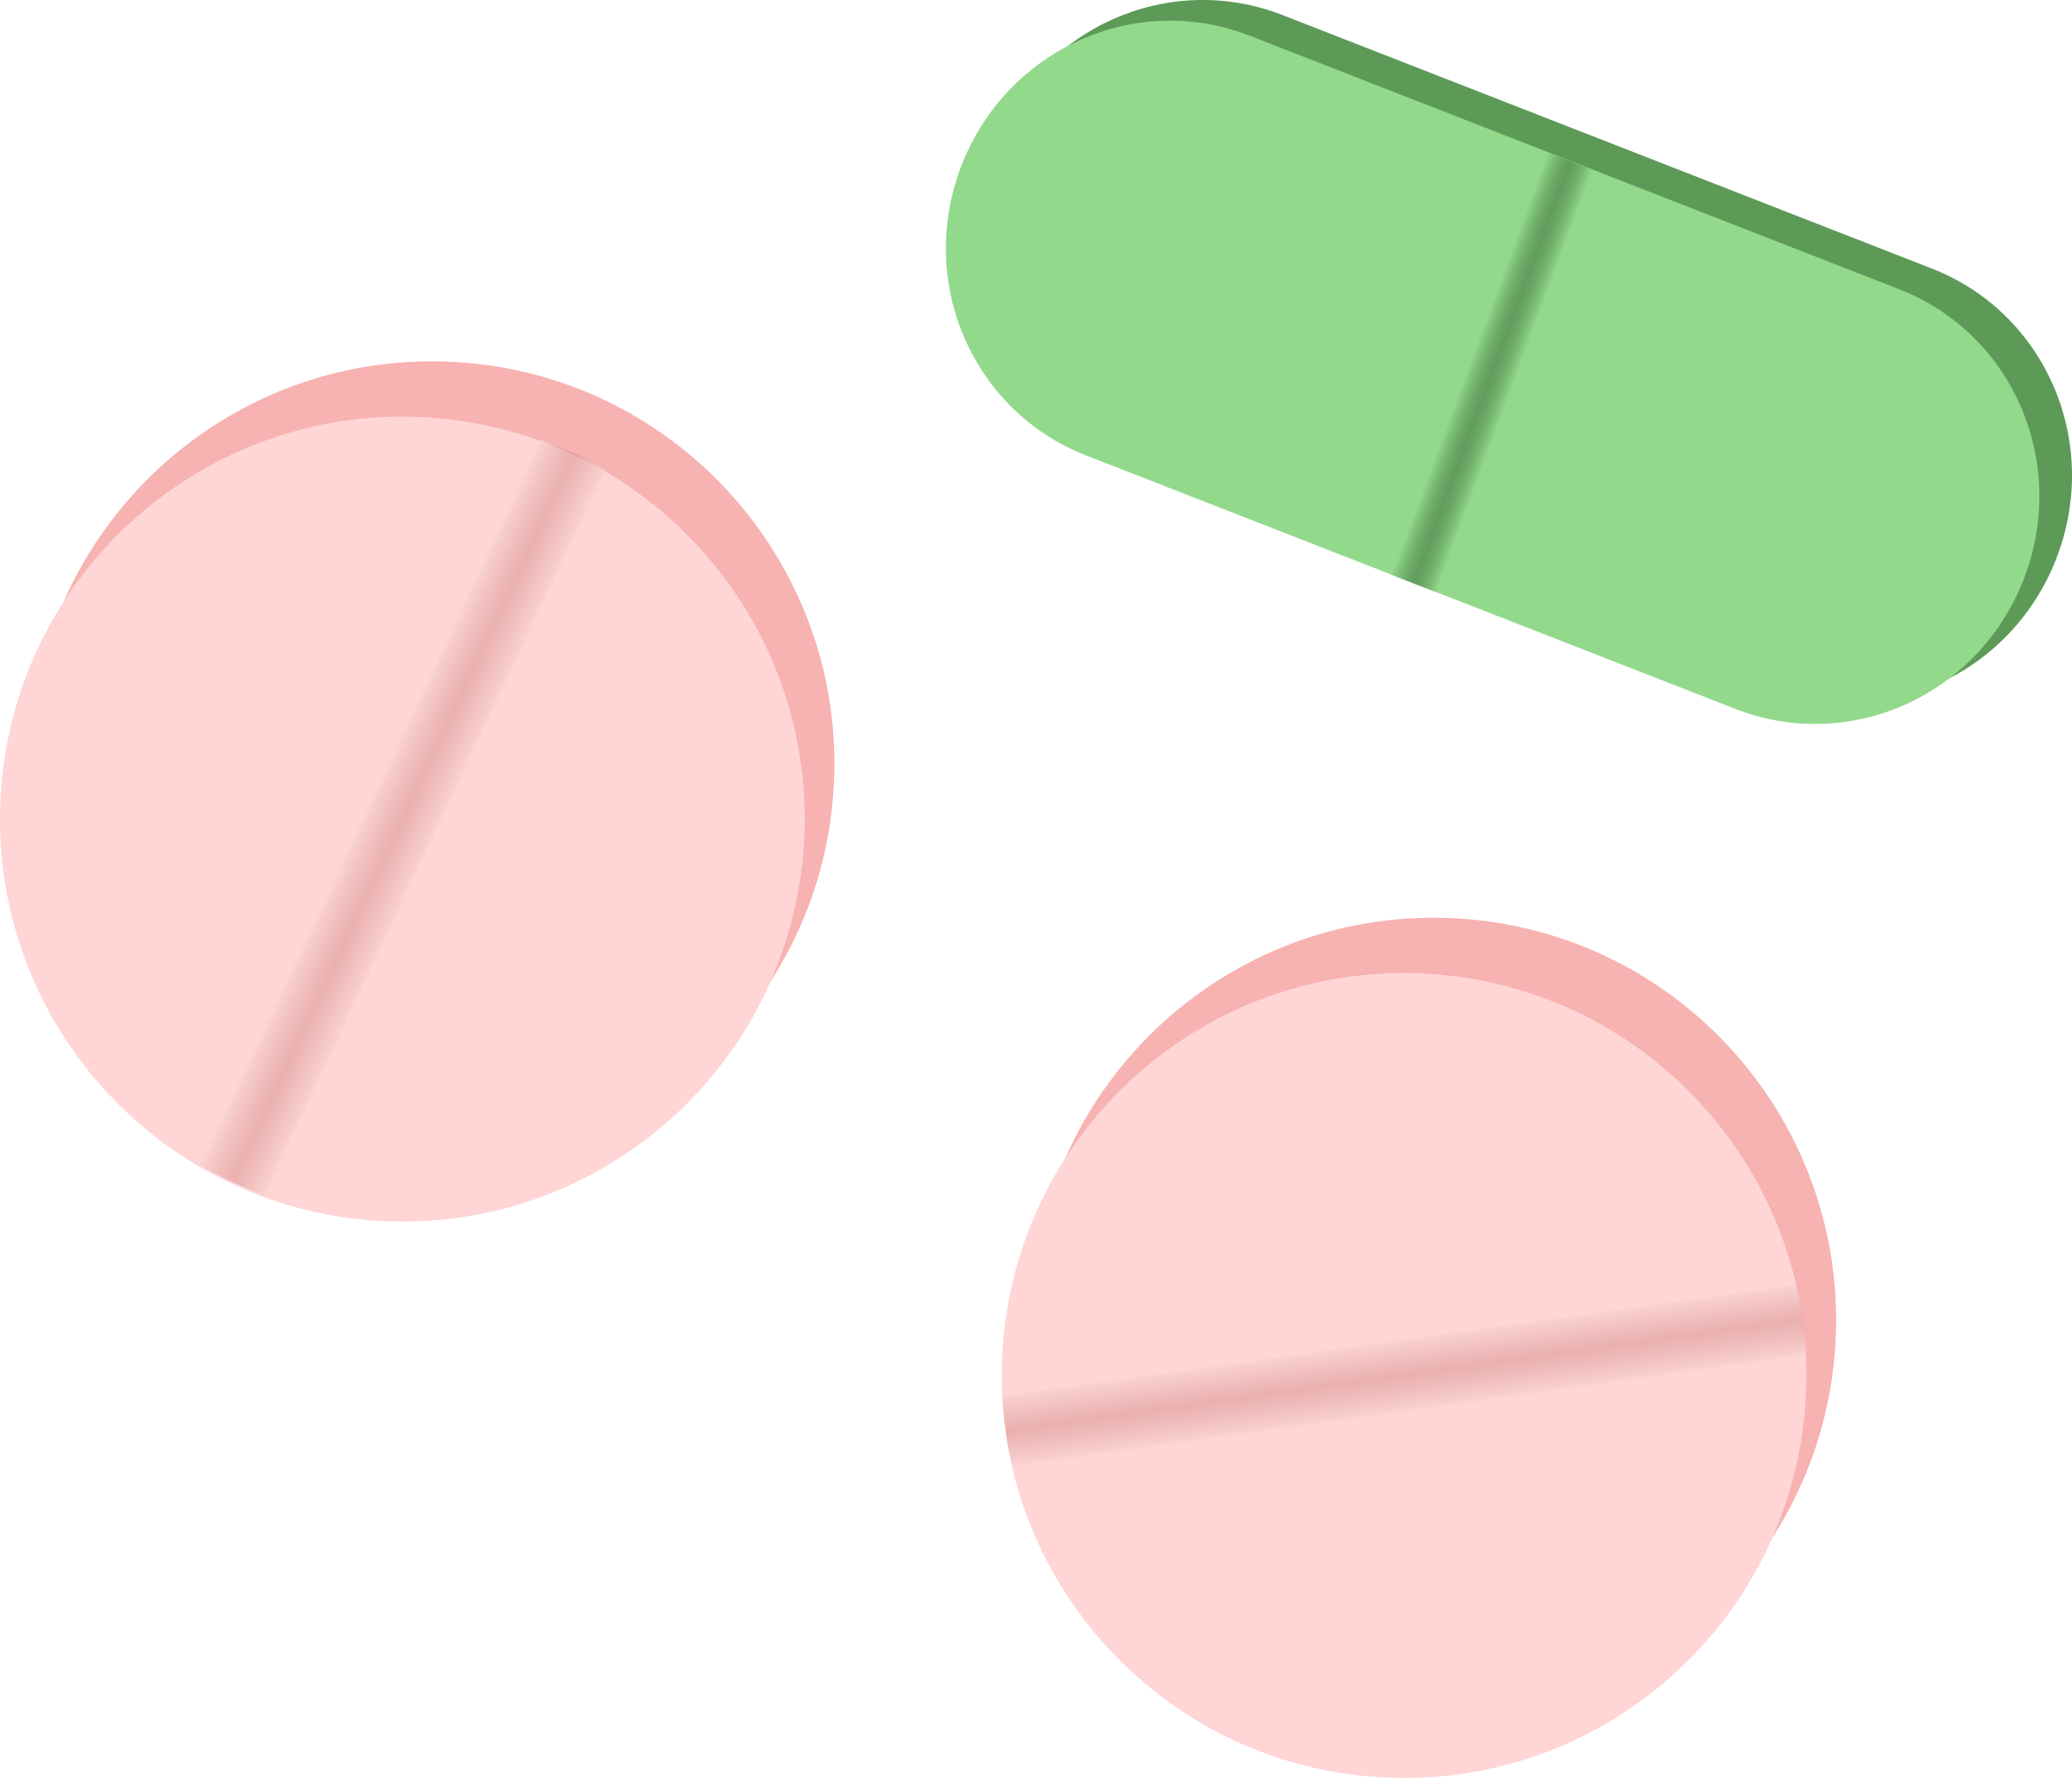 Pills png image without. Medication clipart pink pill